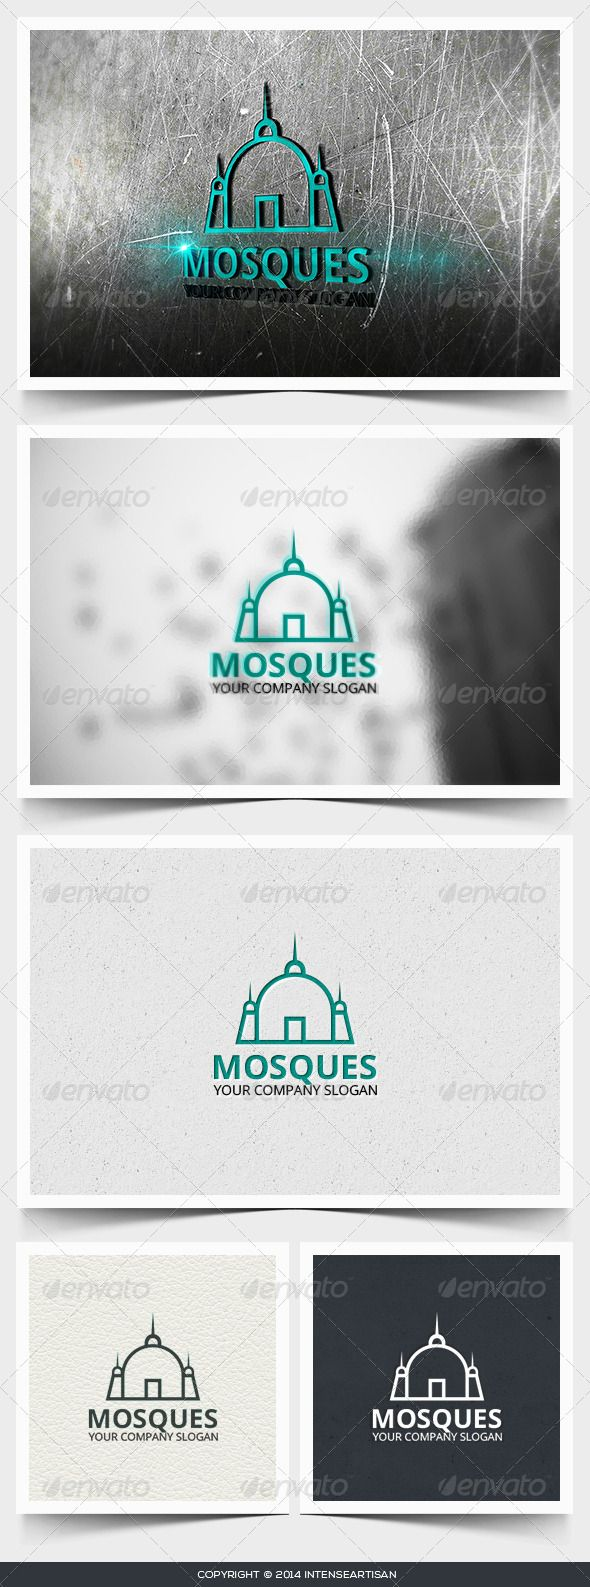 Mosques Logo Design Template Vector #logotype Download it here: http://graphicriver.net/item/mosques-logo-template/6642975?s_rank=1314?ref=nexion